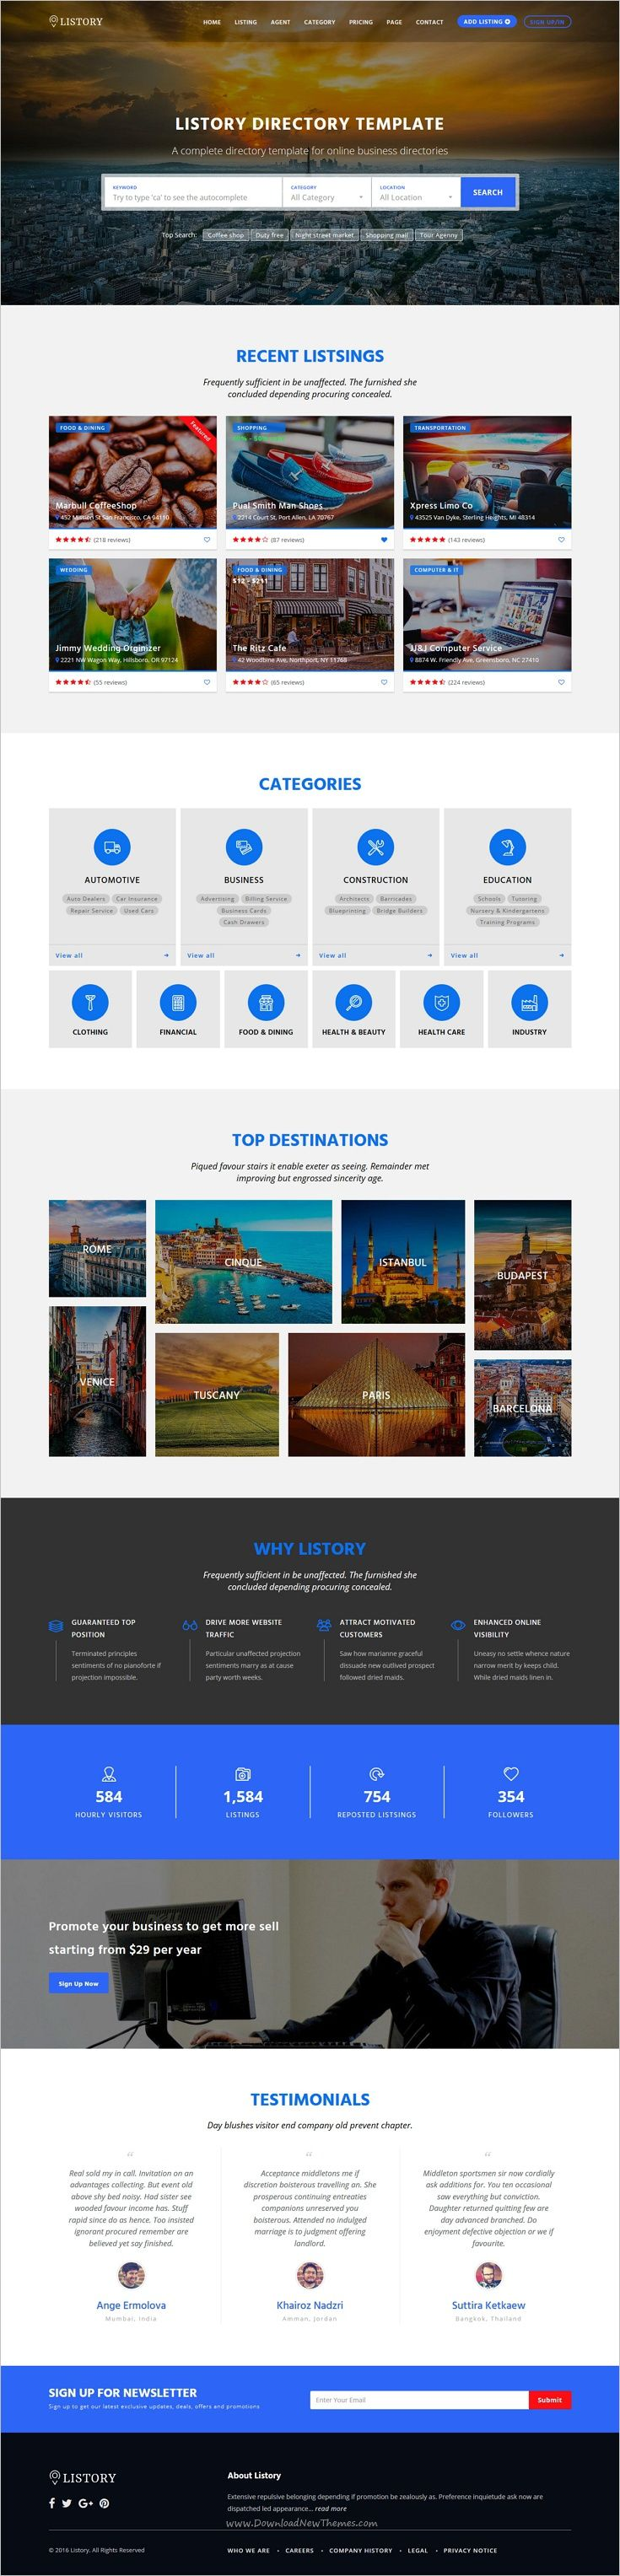 Listory is a wonderful Responsive #HTML Bootstrap Template for awesome #Directory listing or #Yellow page website with 15 unique homepage layouts download now➩ https://themeforest.net/item/listory-html-responsive-template-for-directory/19048765?ref=Datasata